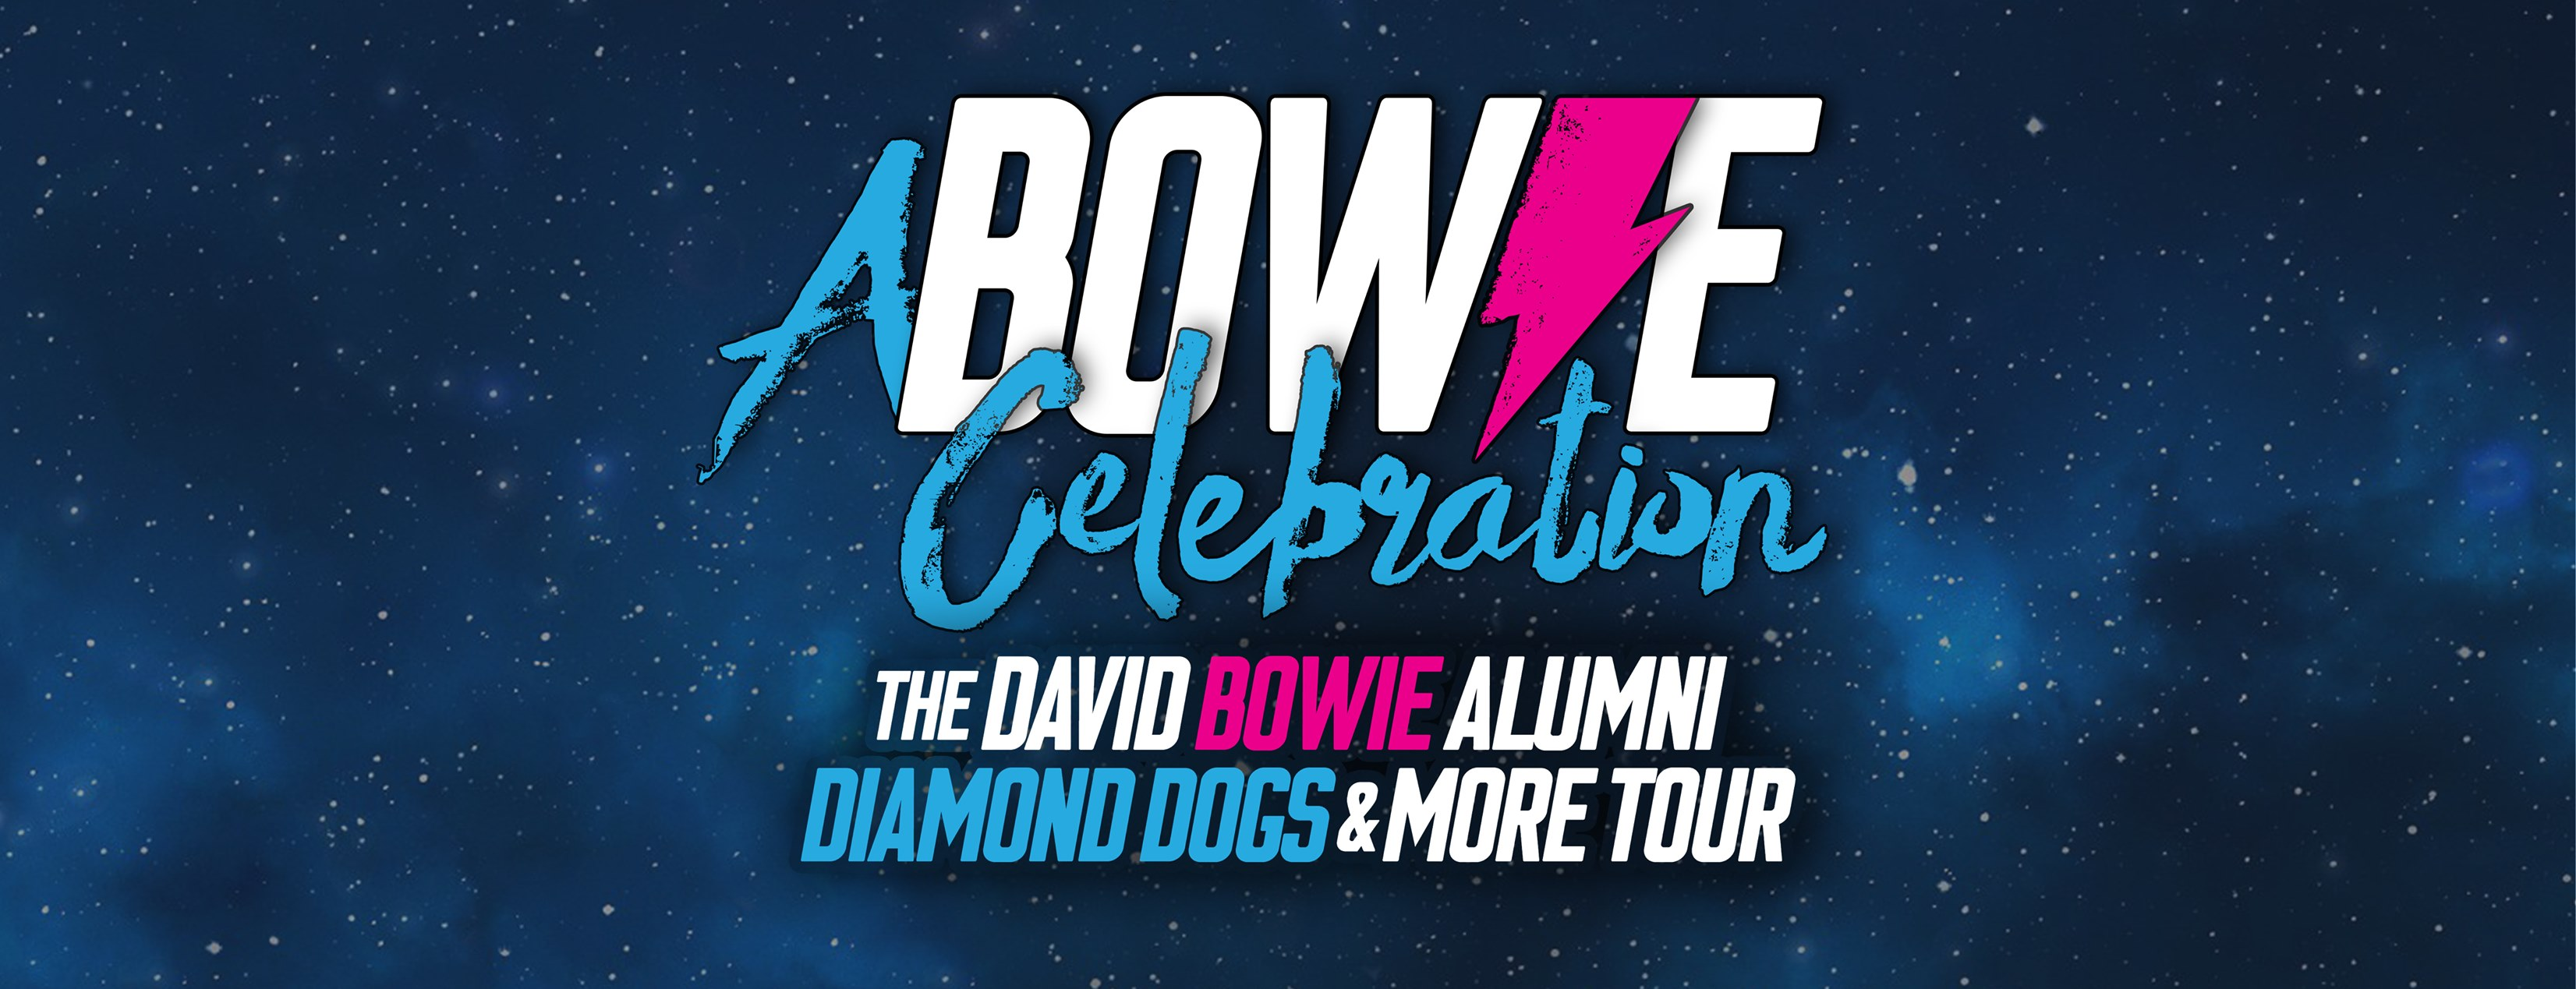 A Bowie Celebration Europe 2020 - The Aluni Tour